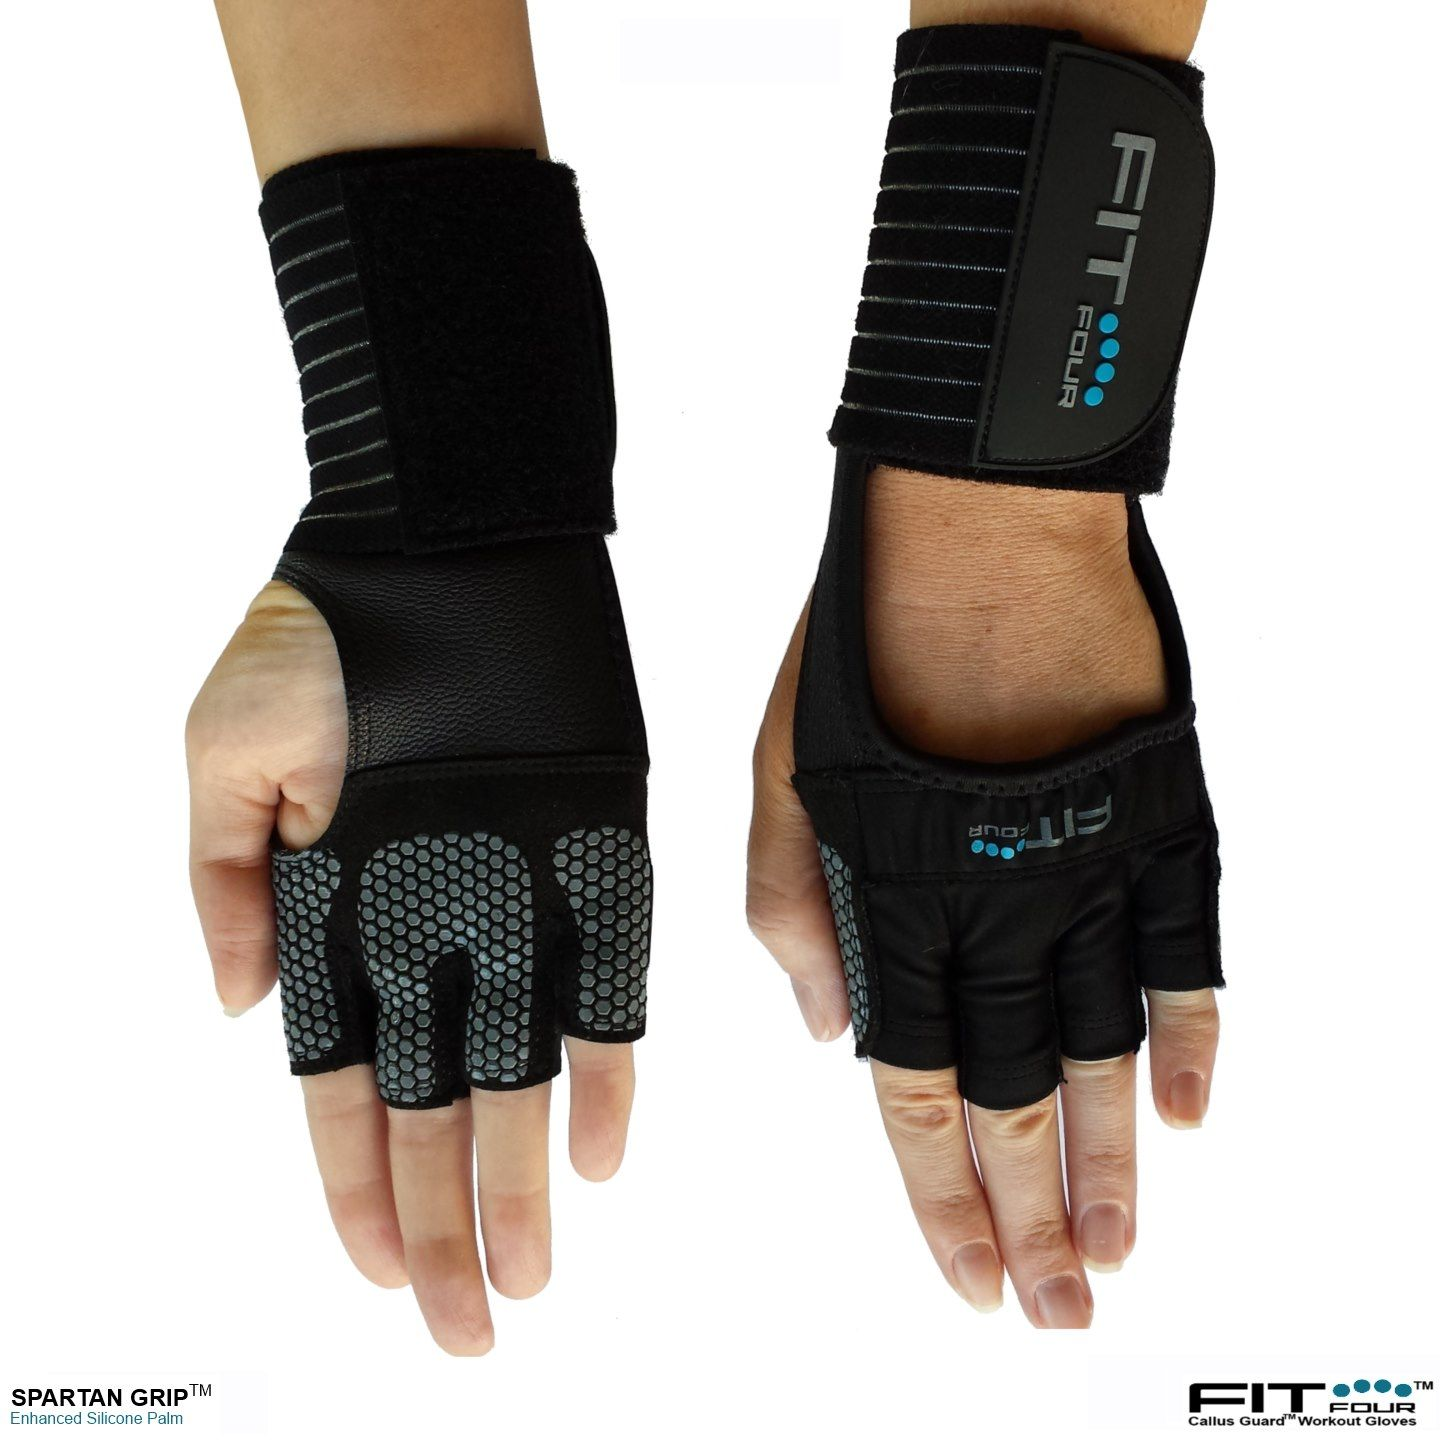 The Spartan Grip Silicone Work Out Glove Features An Anti